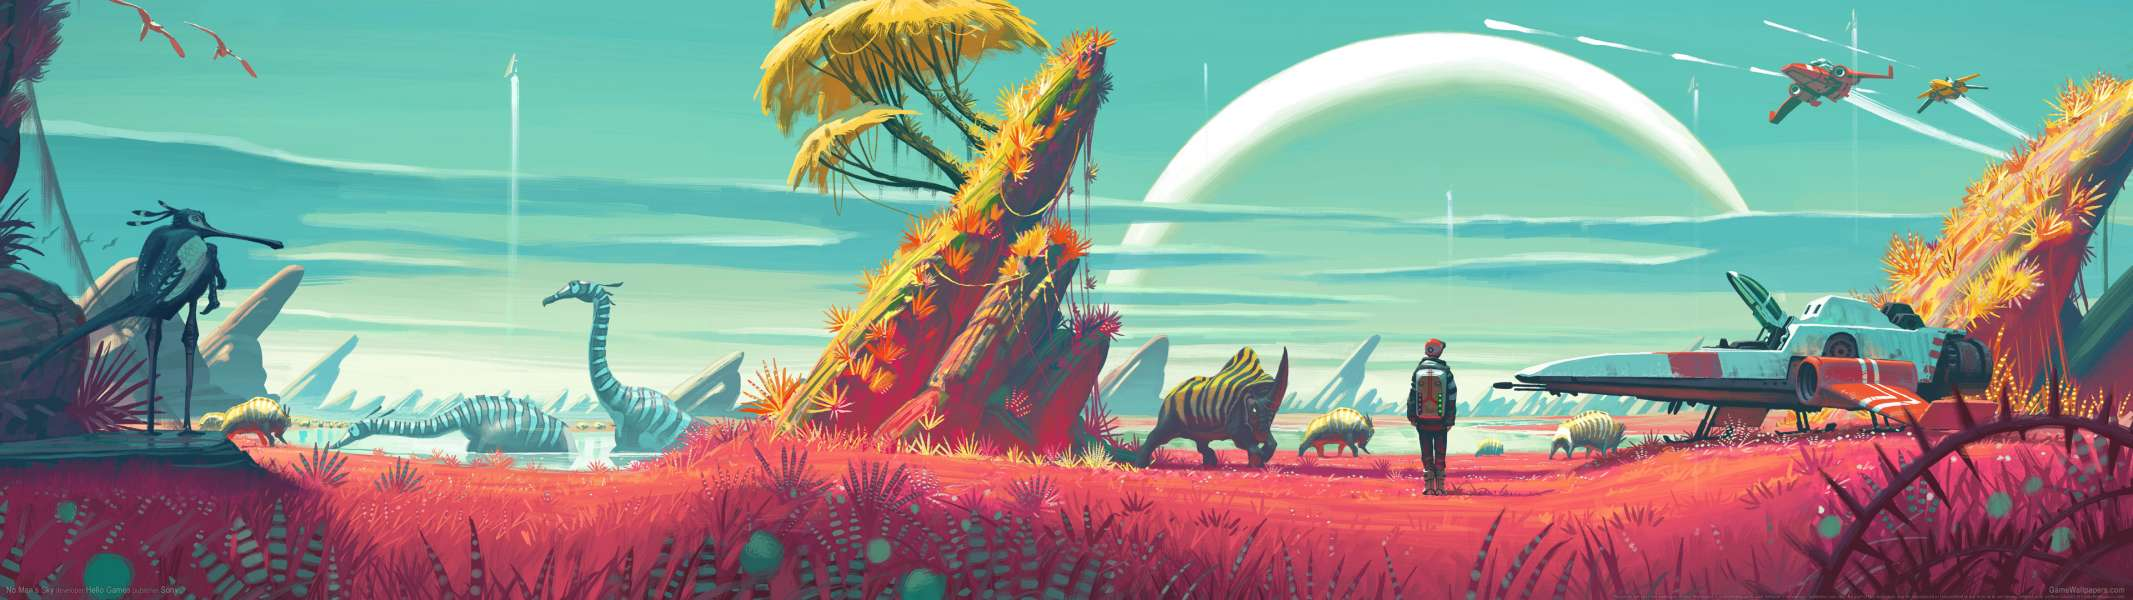 No Man's Sky dual screen achtergrond